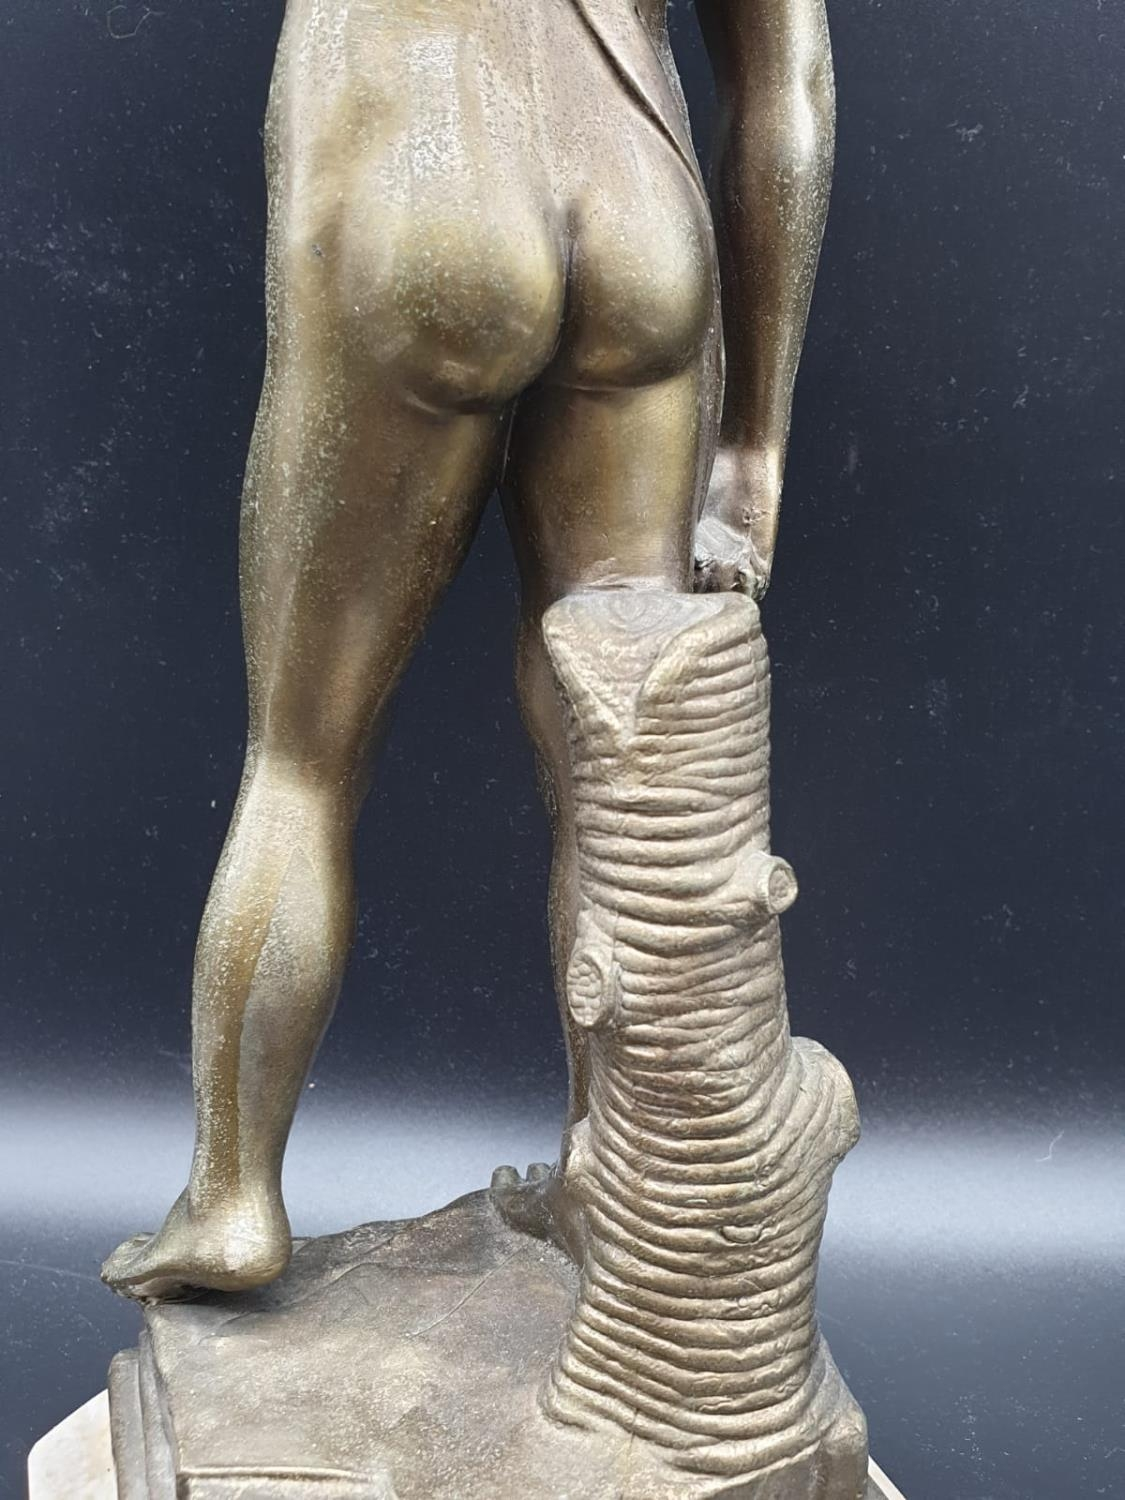 A Statue of Michelangelo's David in Brass on a Marble Base 40cms Tall 3.6kg - Image 6 of 9